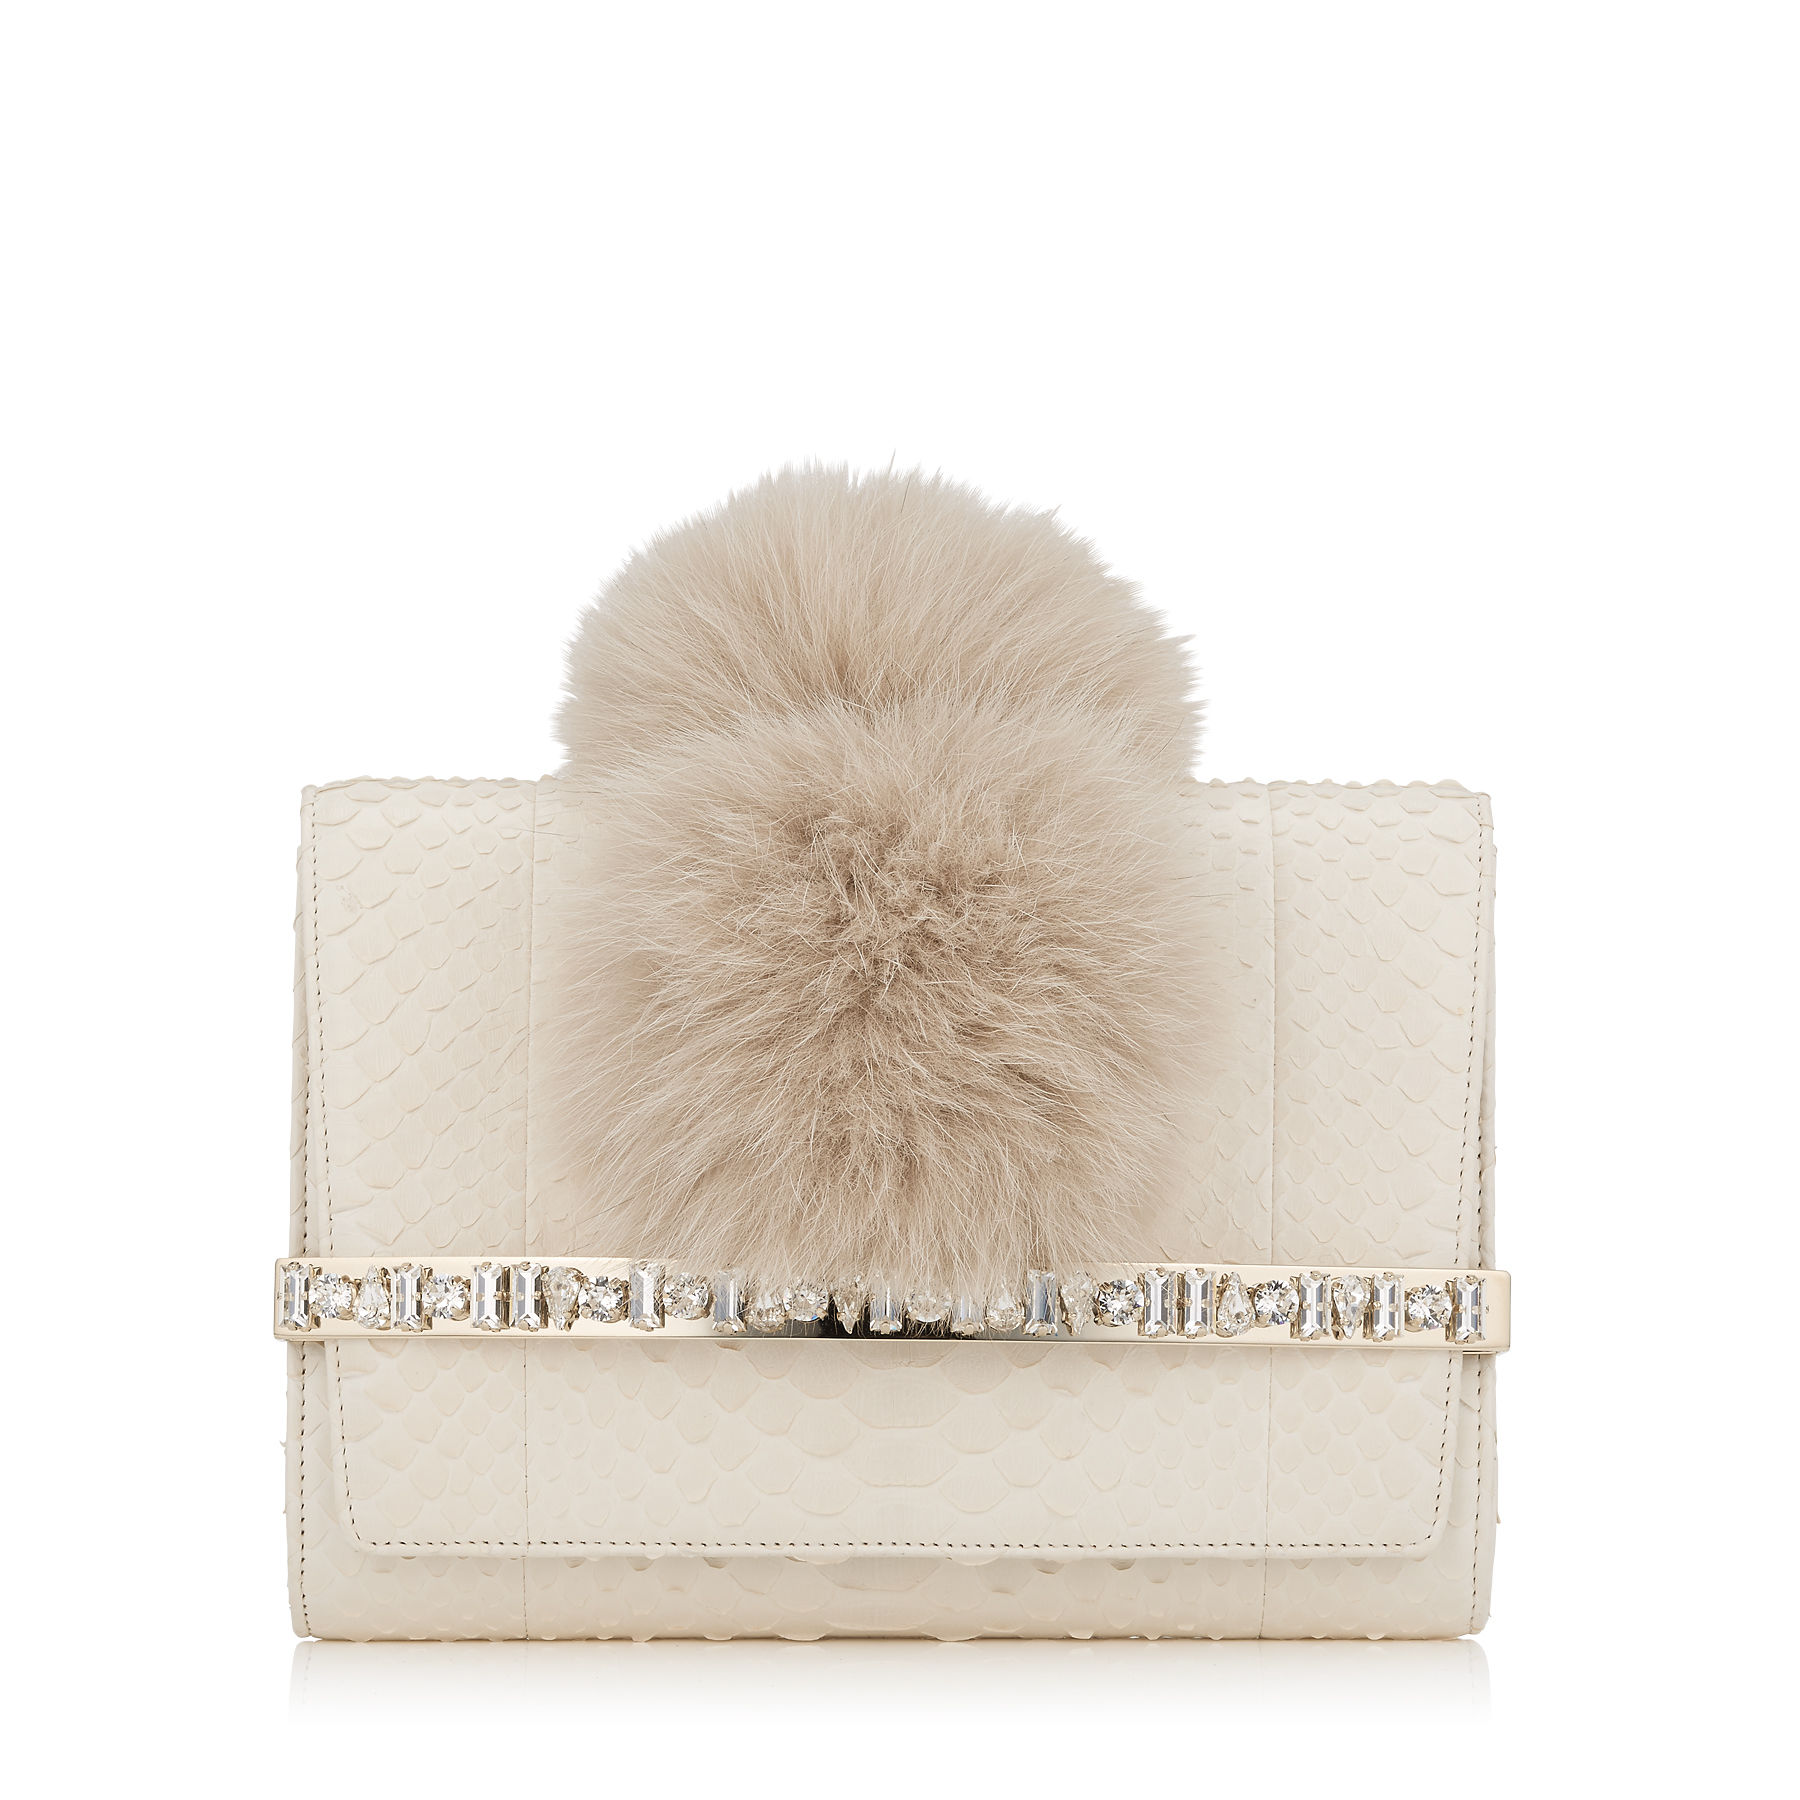 2772ddce8 Jimmy Choo SS16 Mini-Handbag Collection